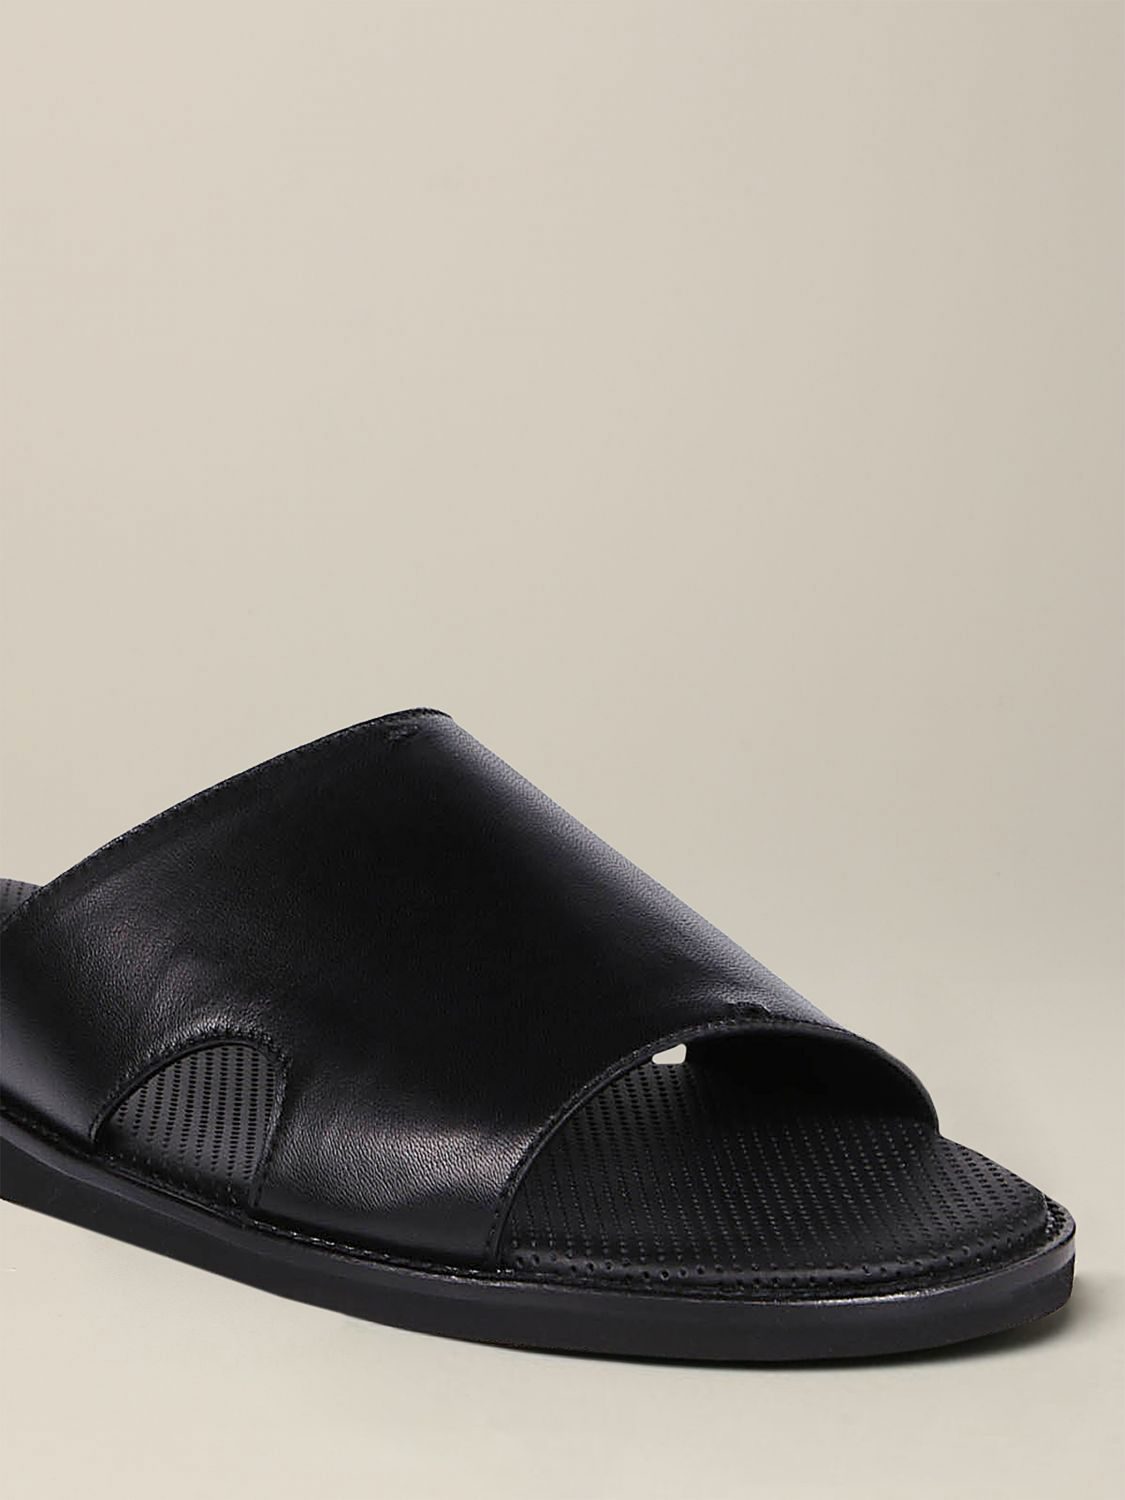 Sandals Doucal's: Shoes men Doucal's black 3